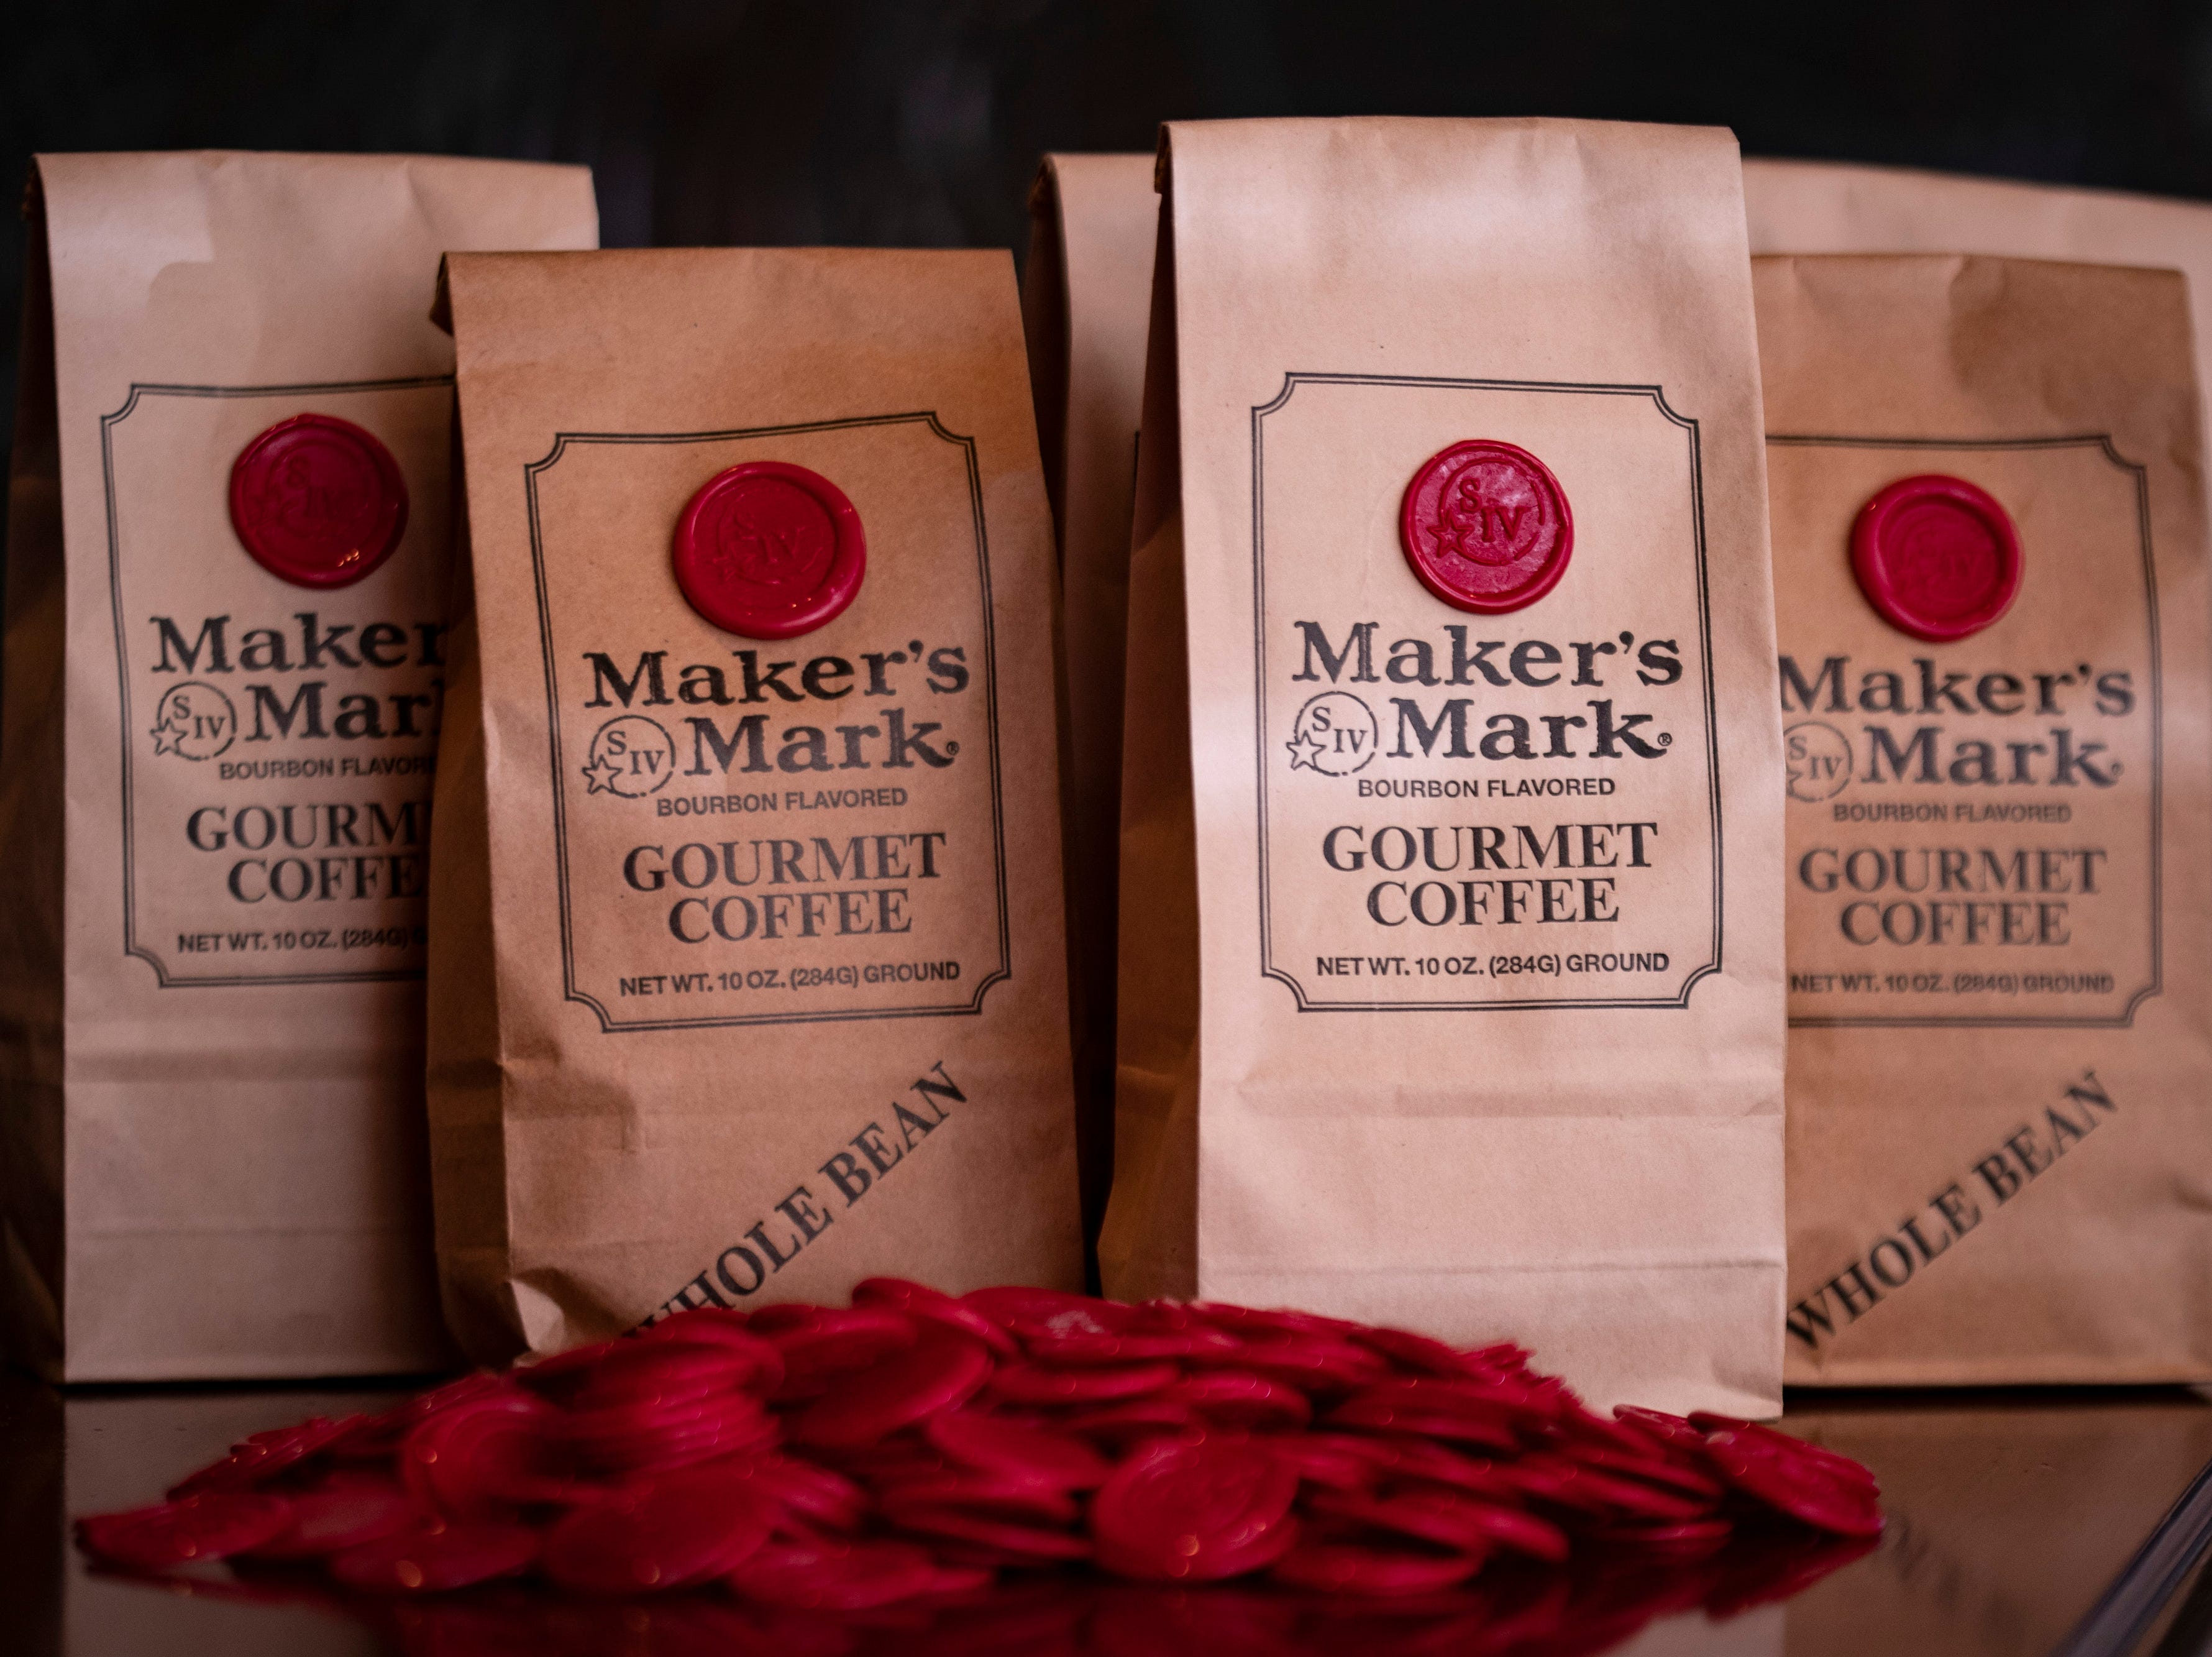 """Ted's Cigars also makes the Maker's Mark coffee that the distillery company sells. Jackson says that Maker's Mark spends over $50,000 on the coffee and sells Jackson the red wax SIV watermark labels to use on the products. """"If Maker's Mark is hosting cigar events with me, if they're buying the cigar for promotional services, they're selling us bourbon, where is the confusion coming from?"""" Jackson said. """"Maker's Mark is causing the confusion in the marketplace."""" Jan. 10, 2019"""